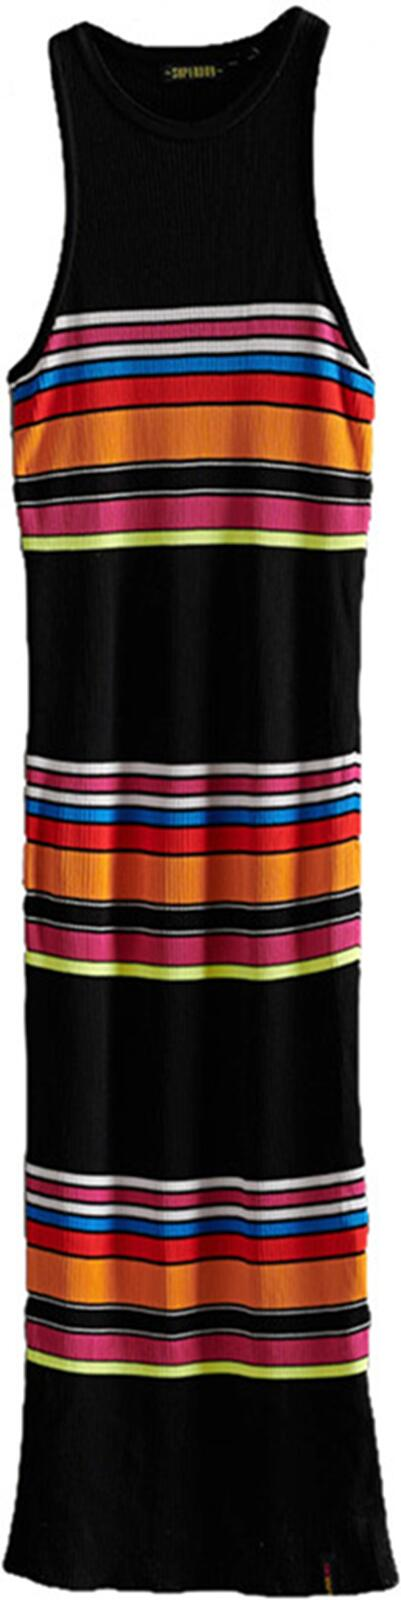 Superdry Stripe Midi Dress	Black Stripe